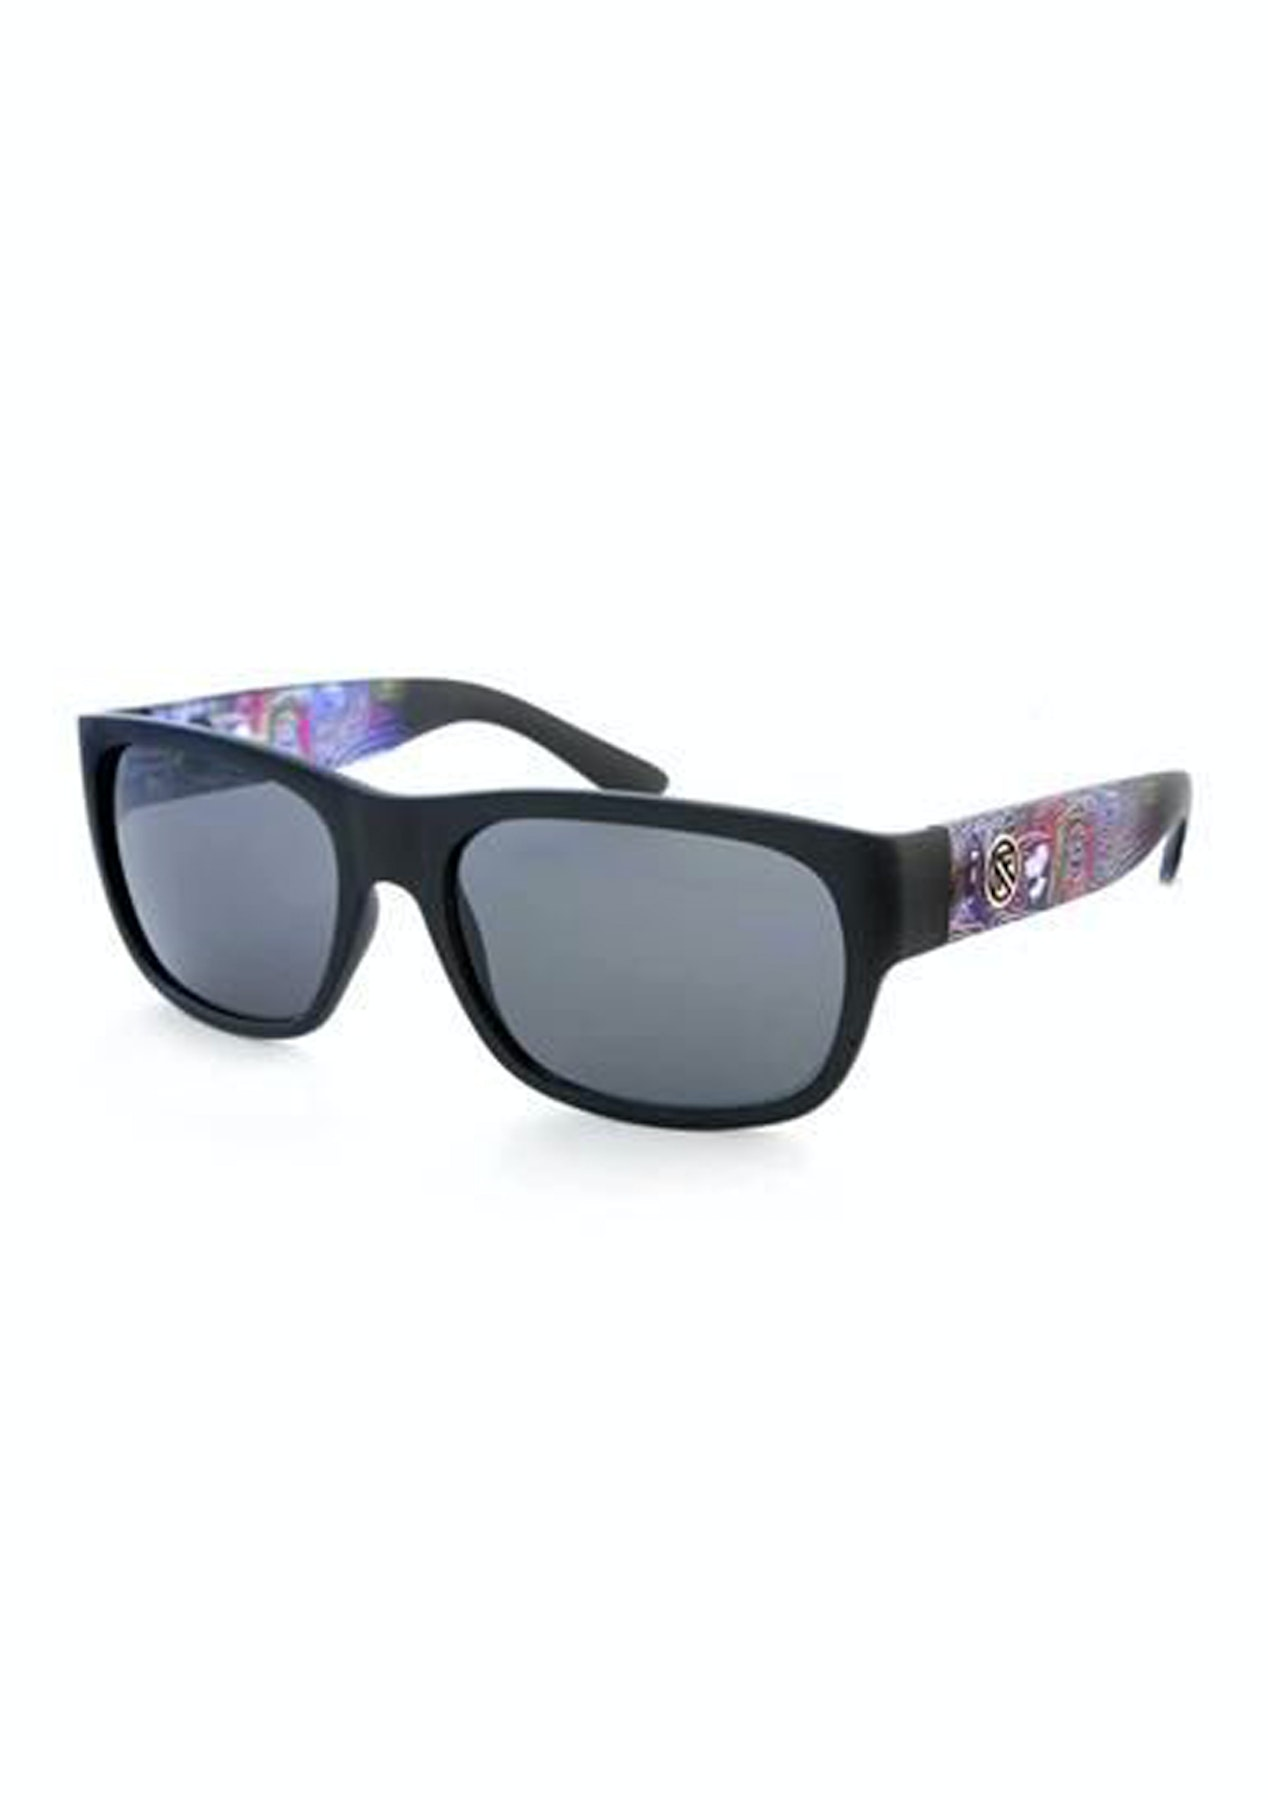 900878343f Filtrate Ban Ray Sunglasses - Art - Sunglasses Super Sale From  9.95 -  Onceit